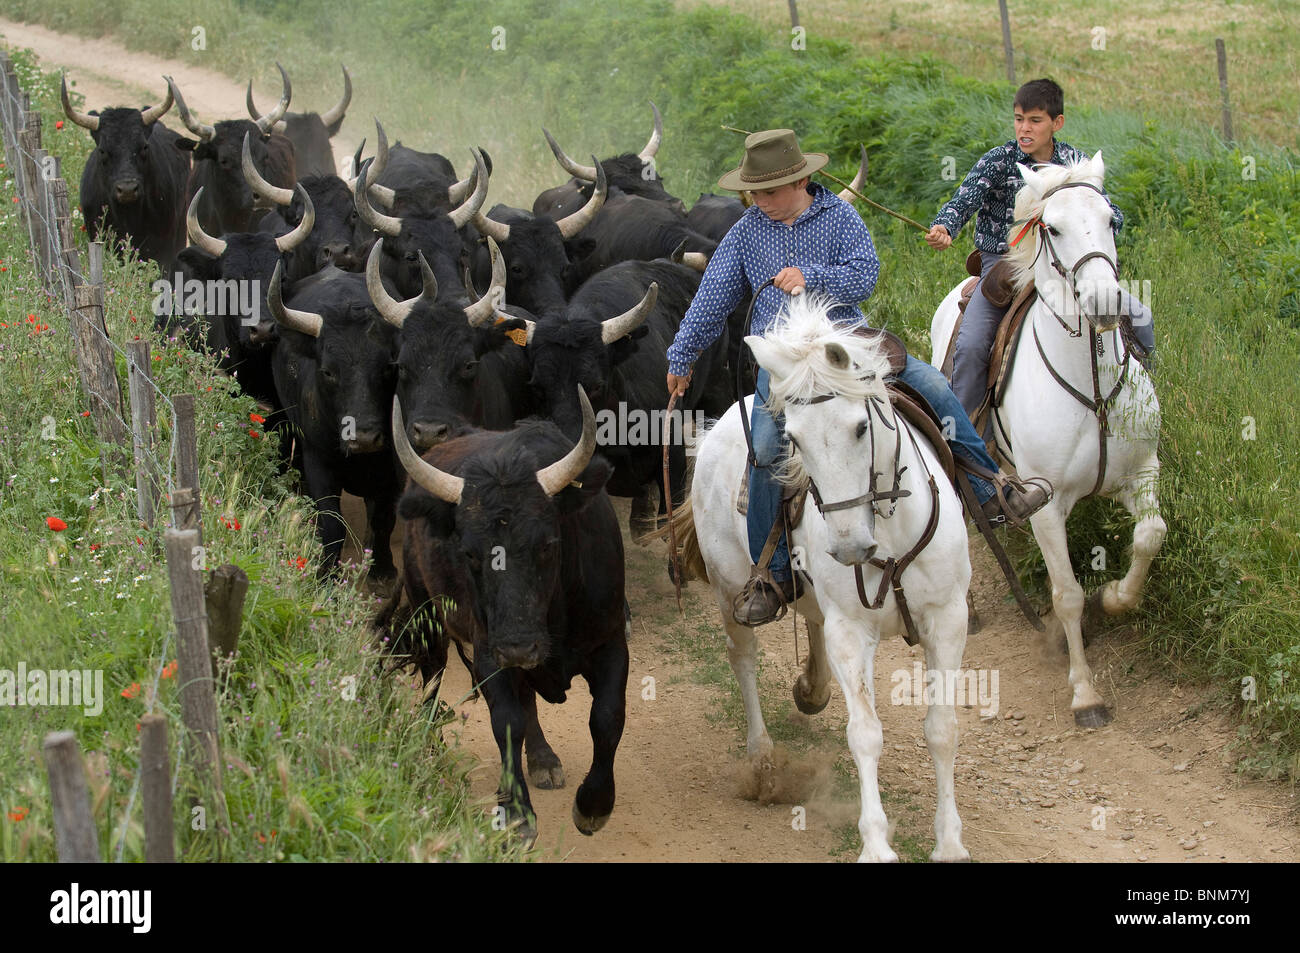 France Camargue guardians gardians Camargue cattle bulls herd chase pasture  grazing land path fence two horses 2013ef4ee8a